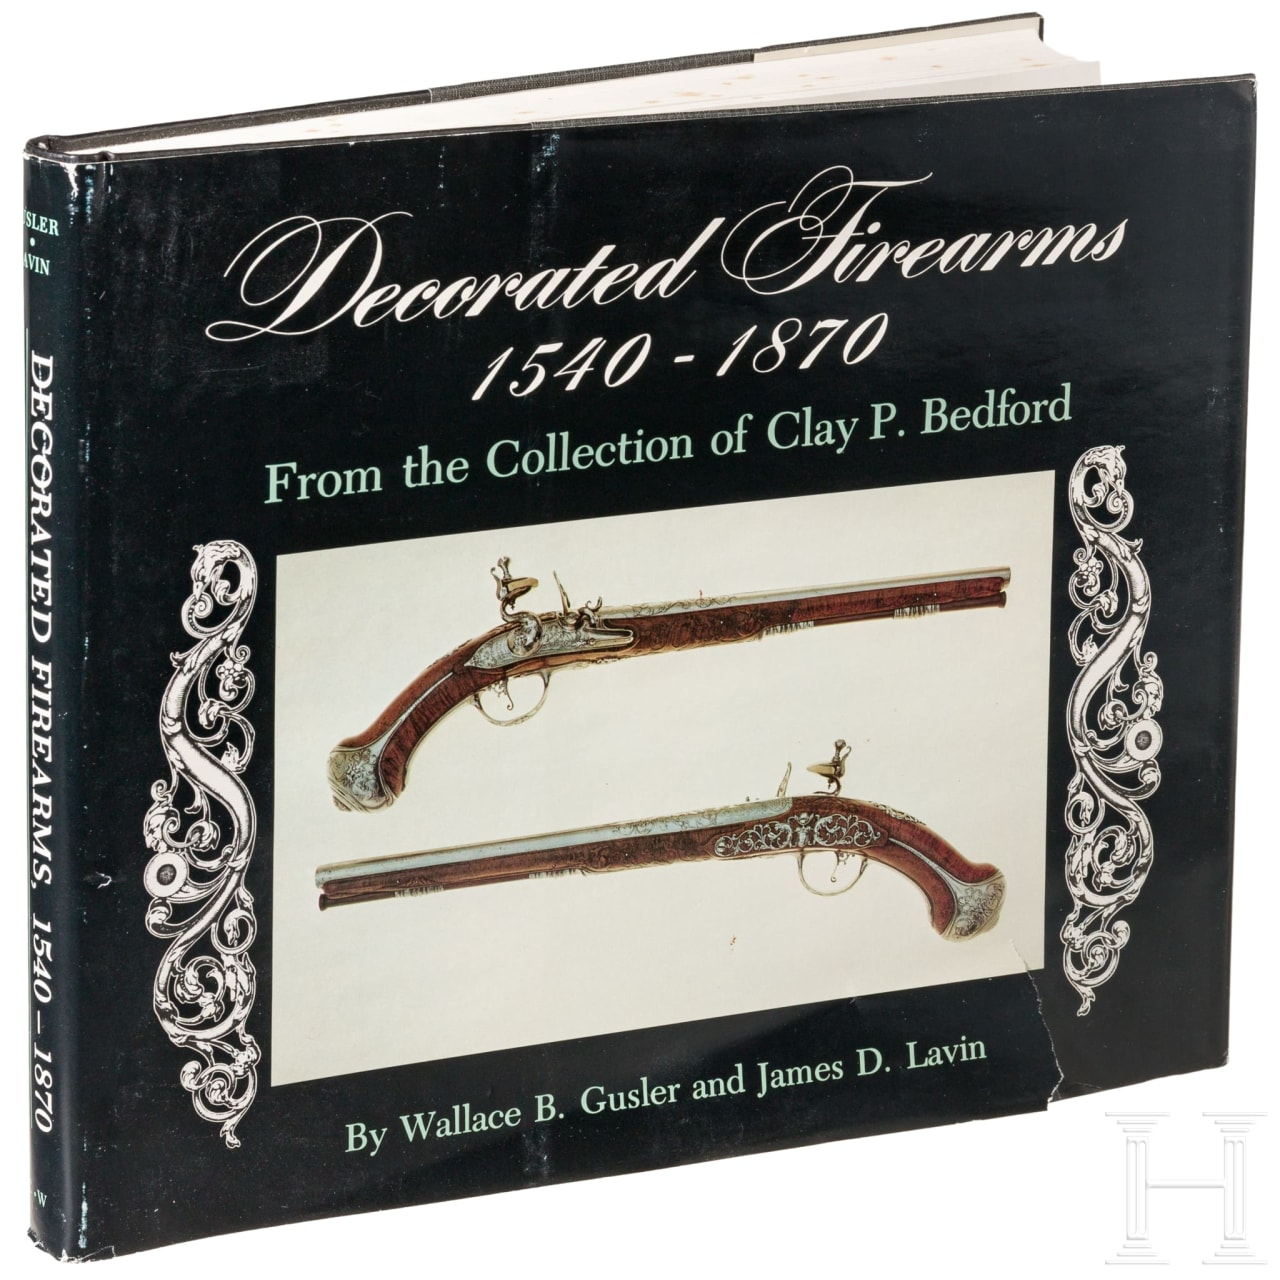 Gusler, Wallace B., Decorated Firearms 1540-1870, from the Collection of Clay P. Bedford